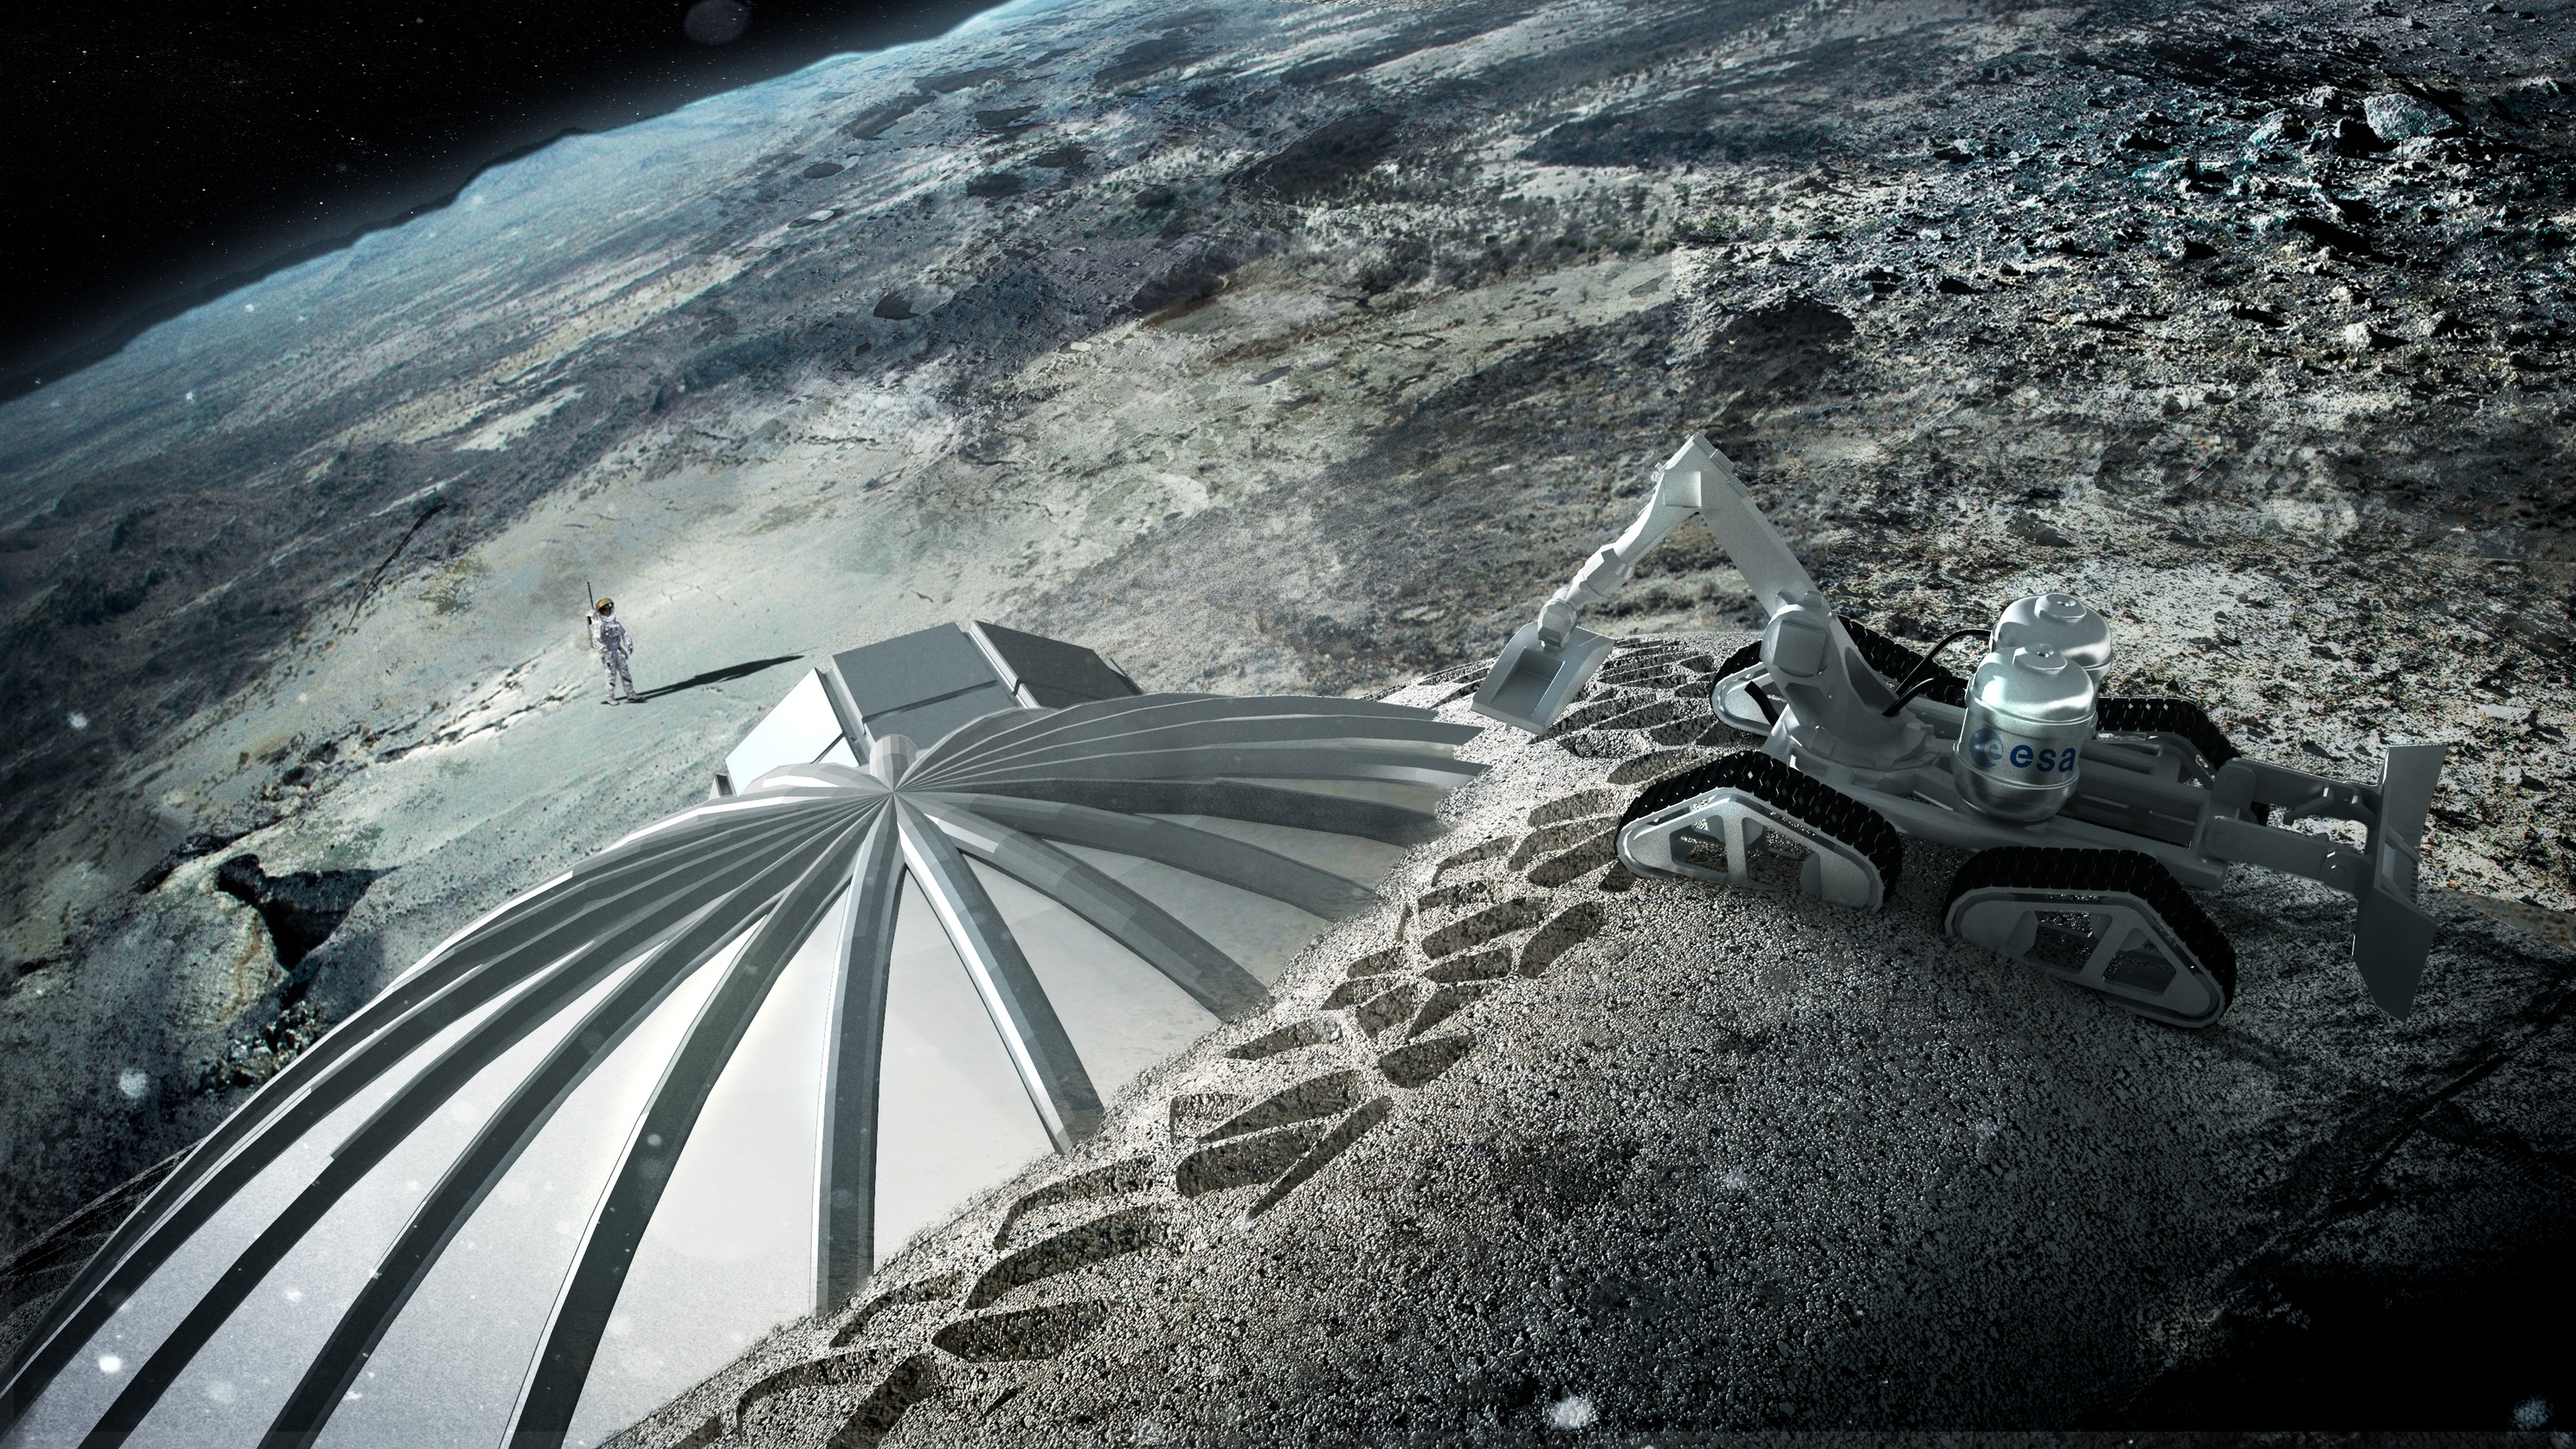 lunar colony in space - photo #13